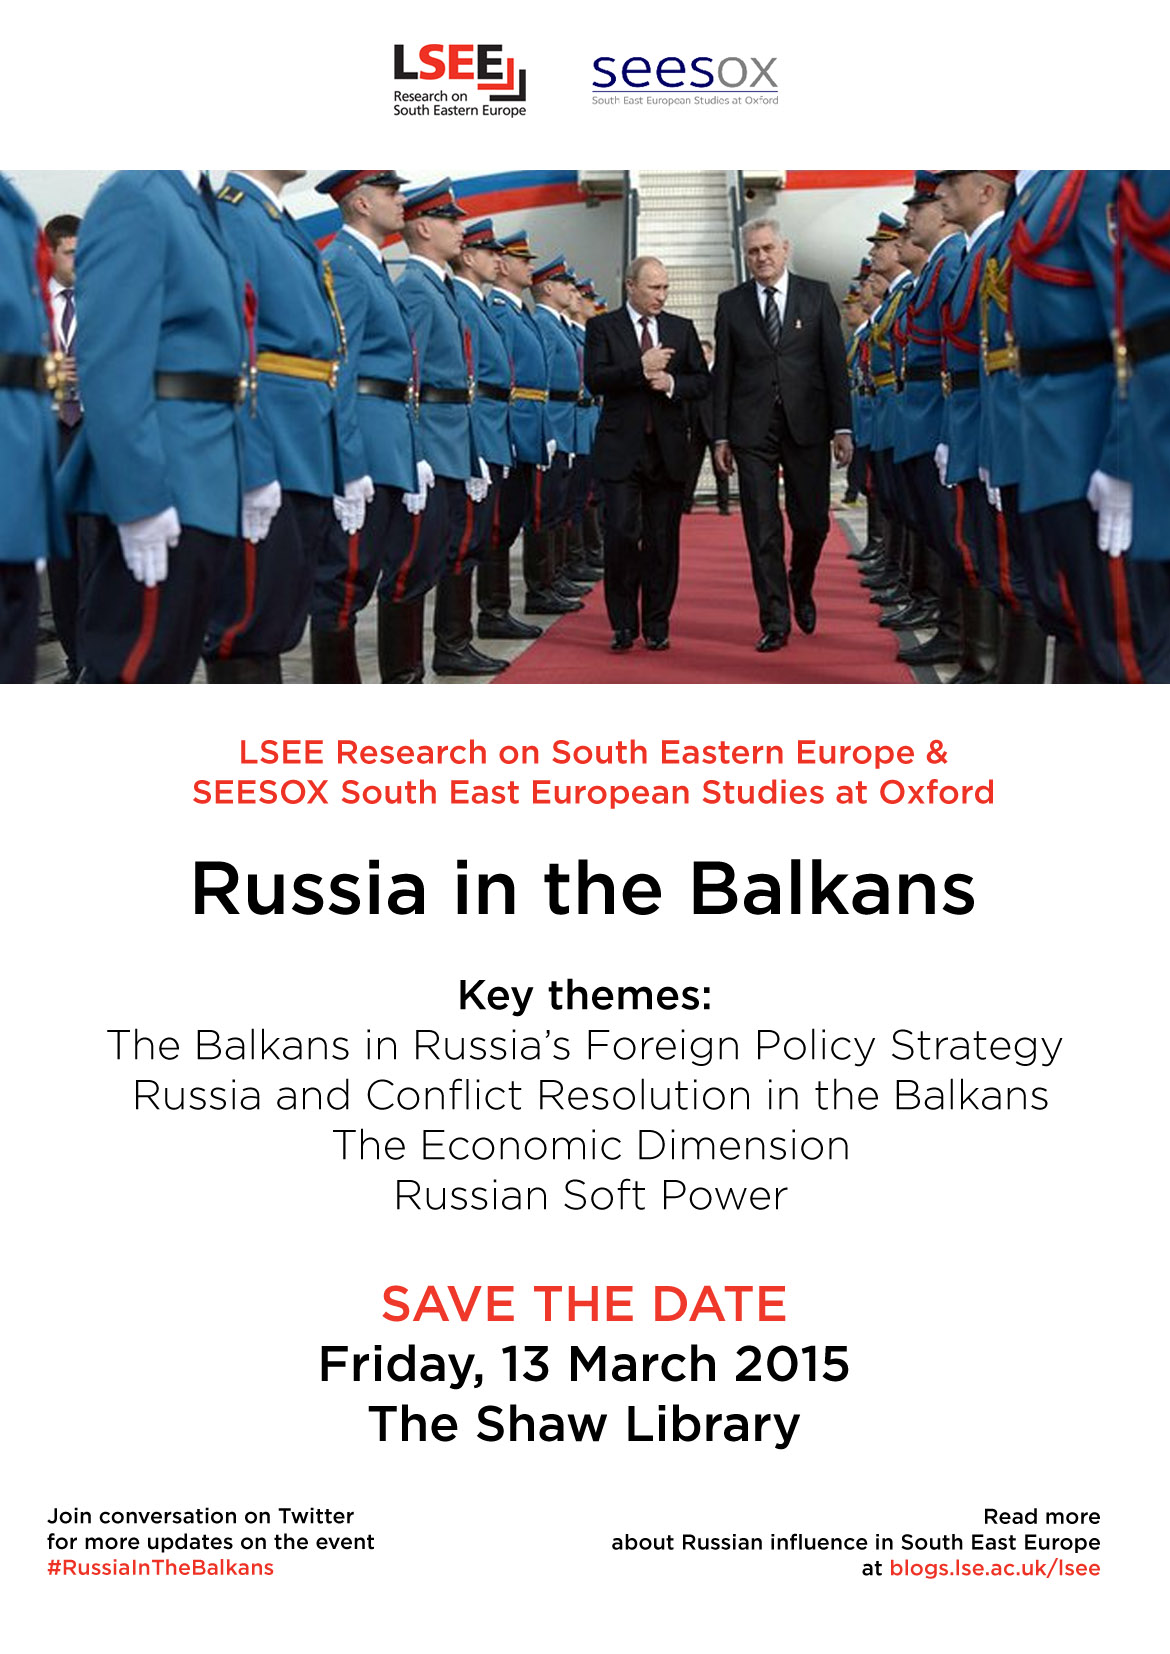 Russia in the Balkans poster - Dec 2014